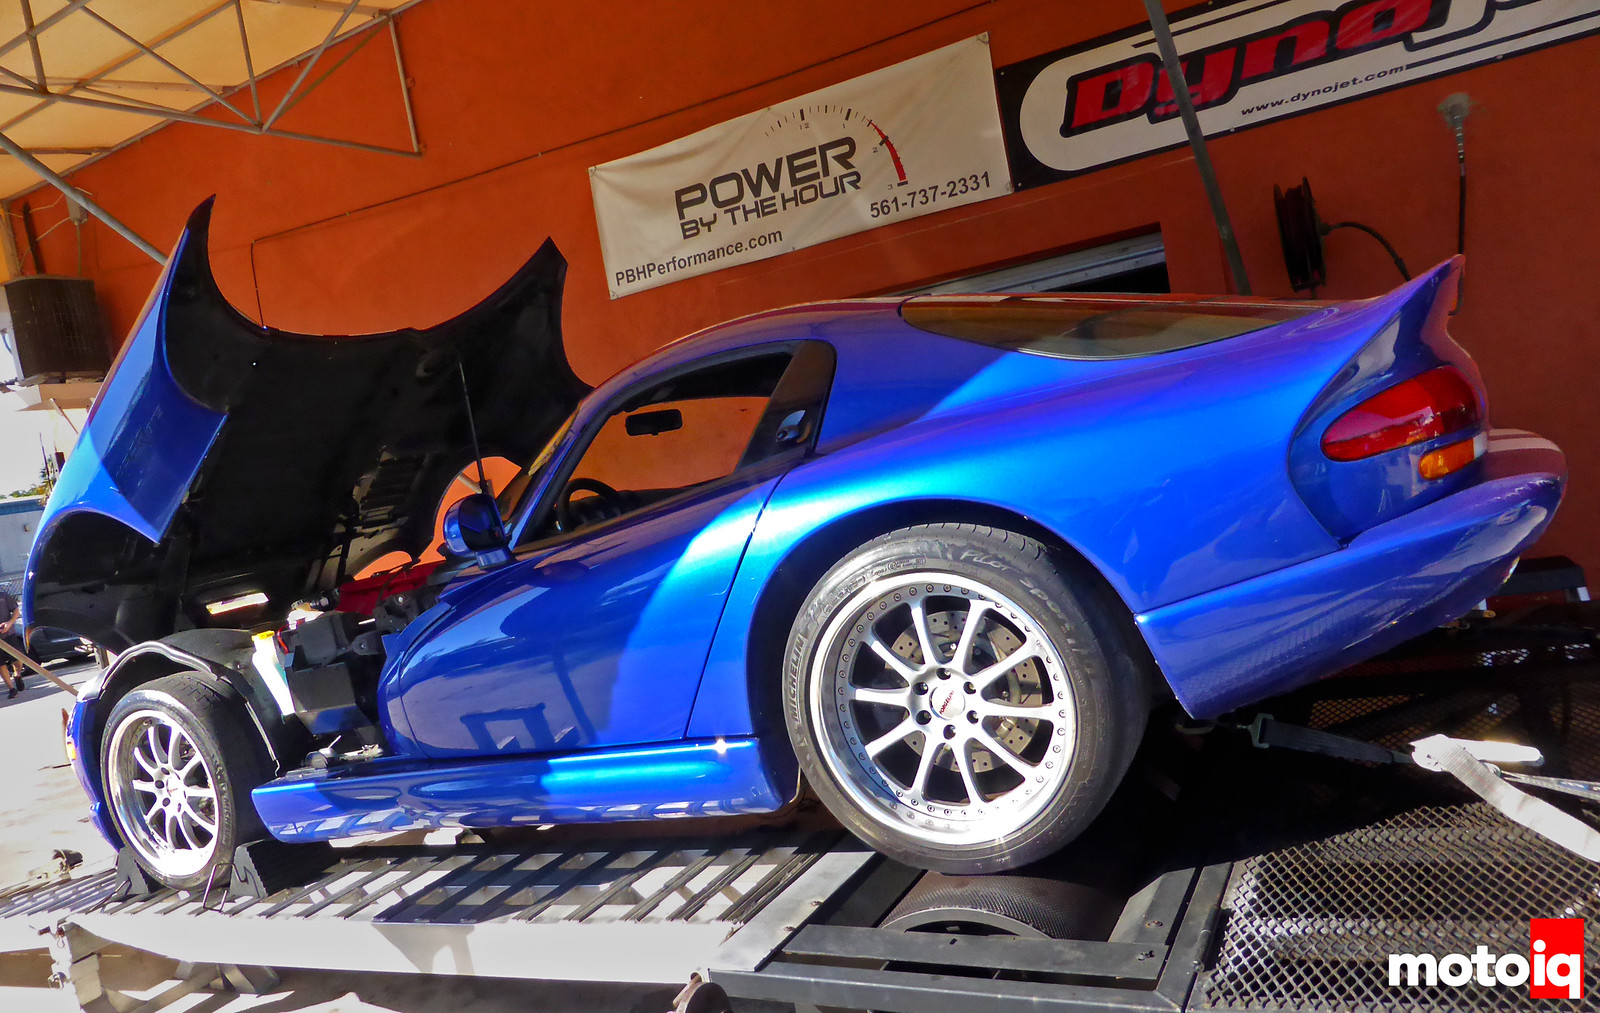 Viper GTS Dyno Power By The Hour